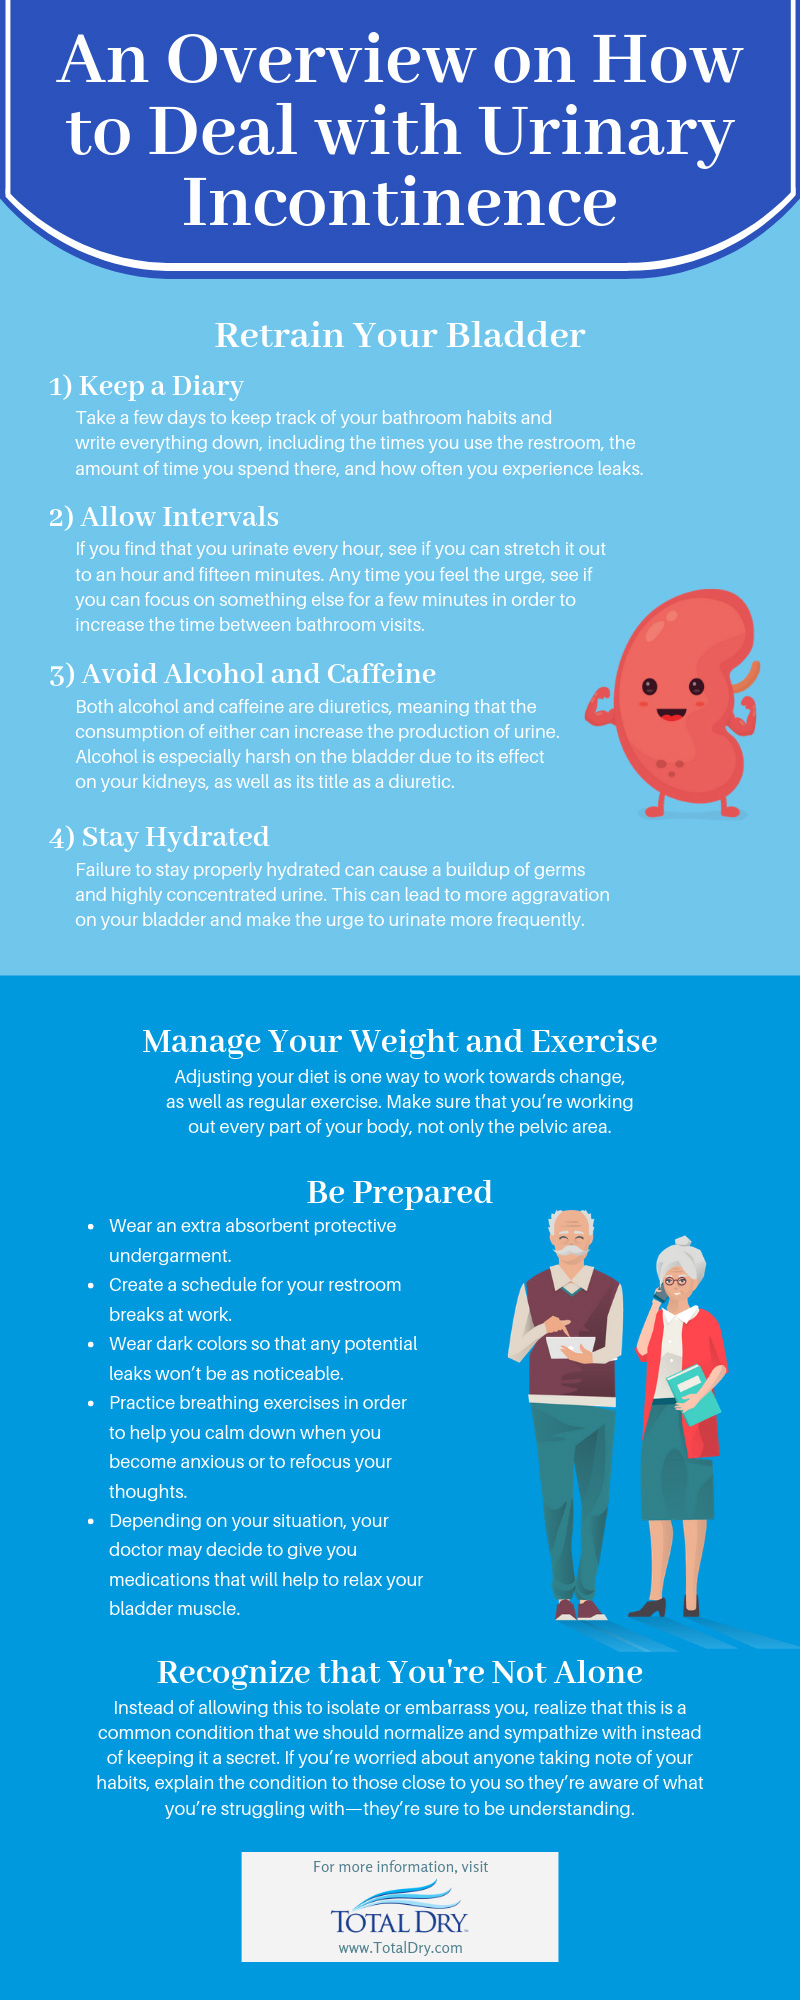 An Overview on How to Deal with Urinary Incontinence infographic